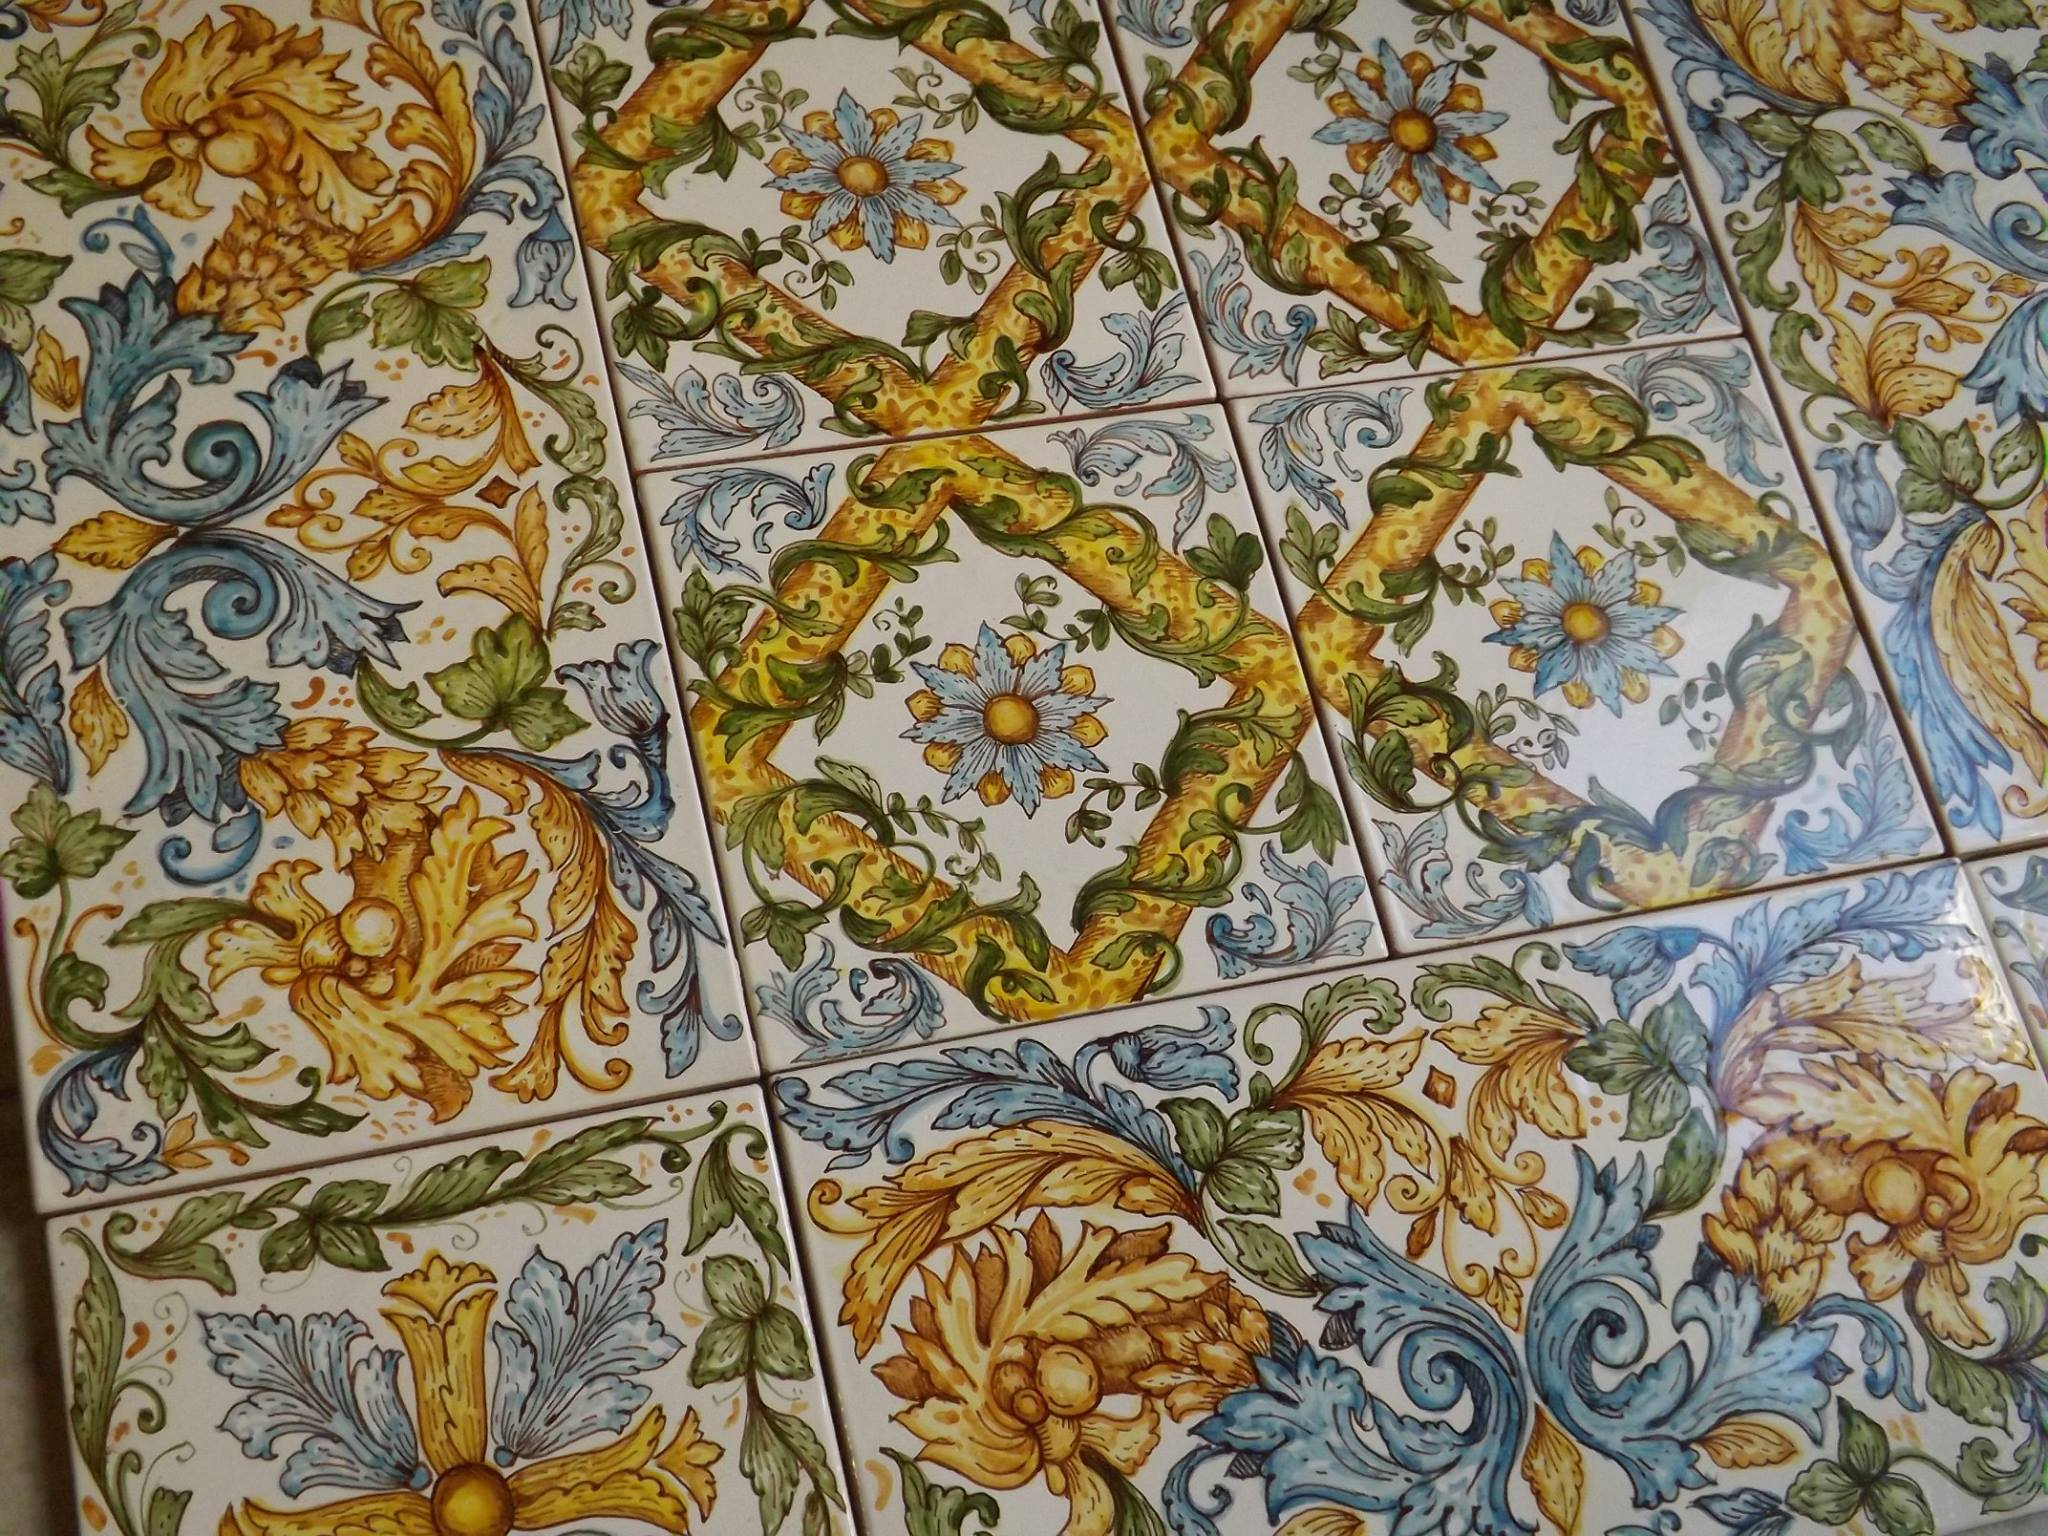 Ghenos tile floors and panels